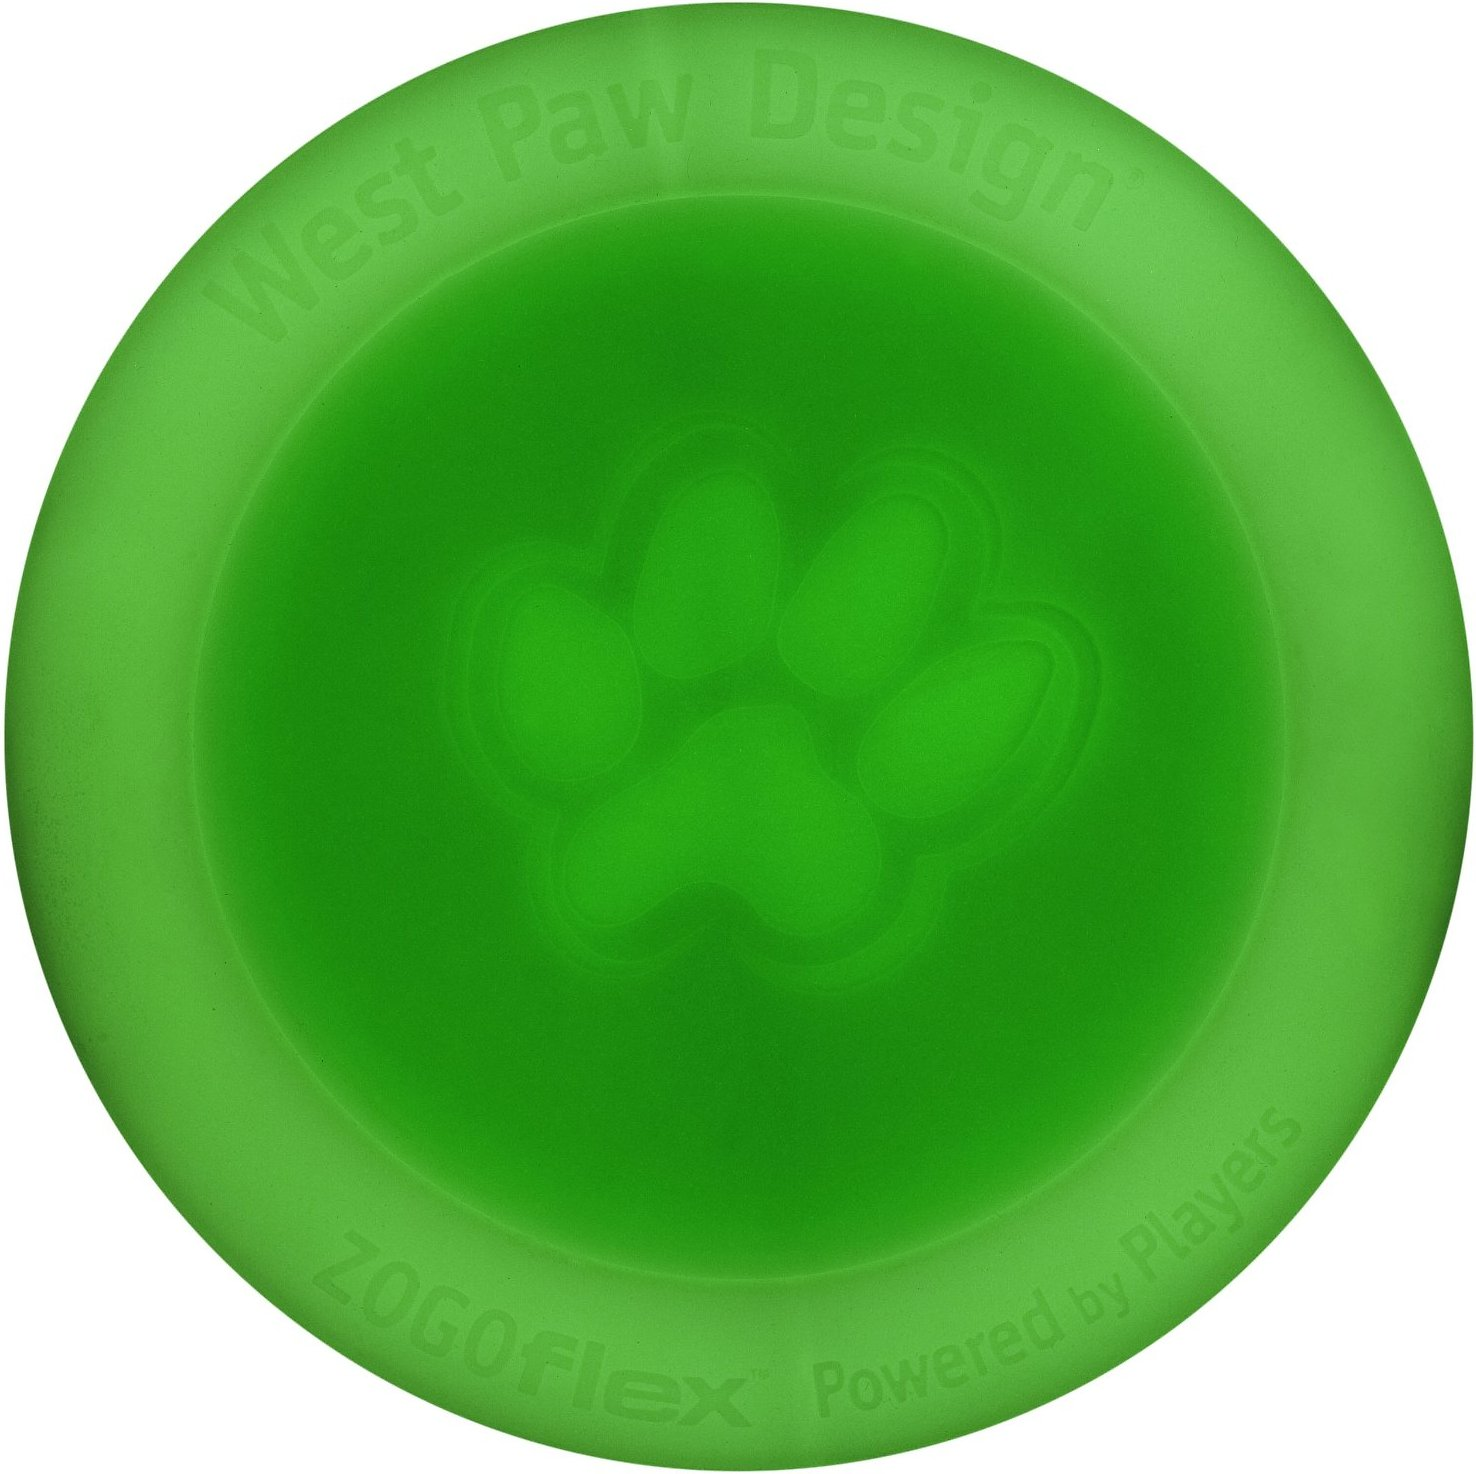 West Paw Zogoflex Zisc Dog Toy, Glow, Small